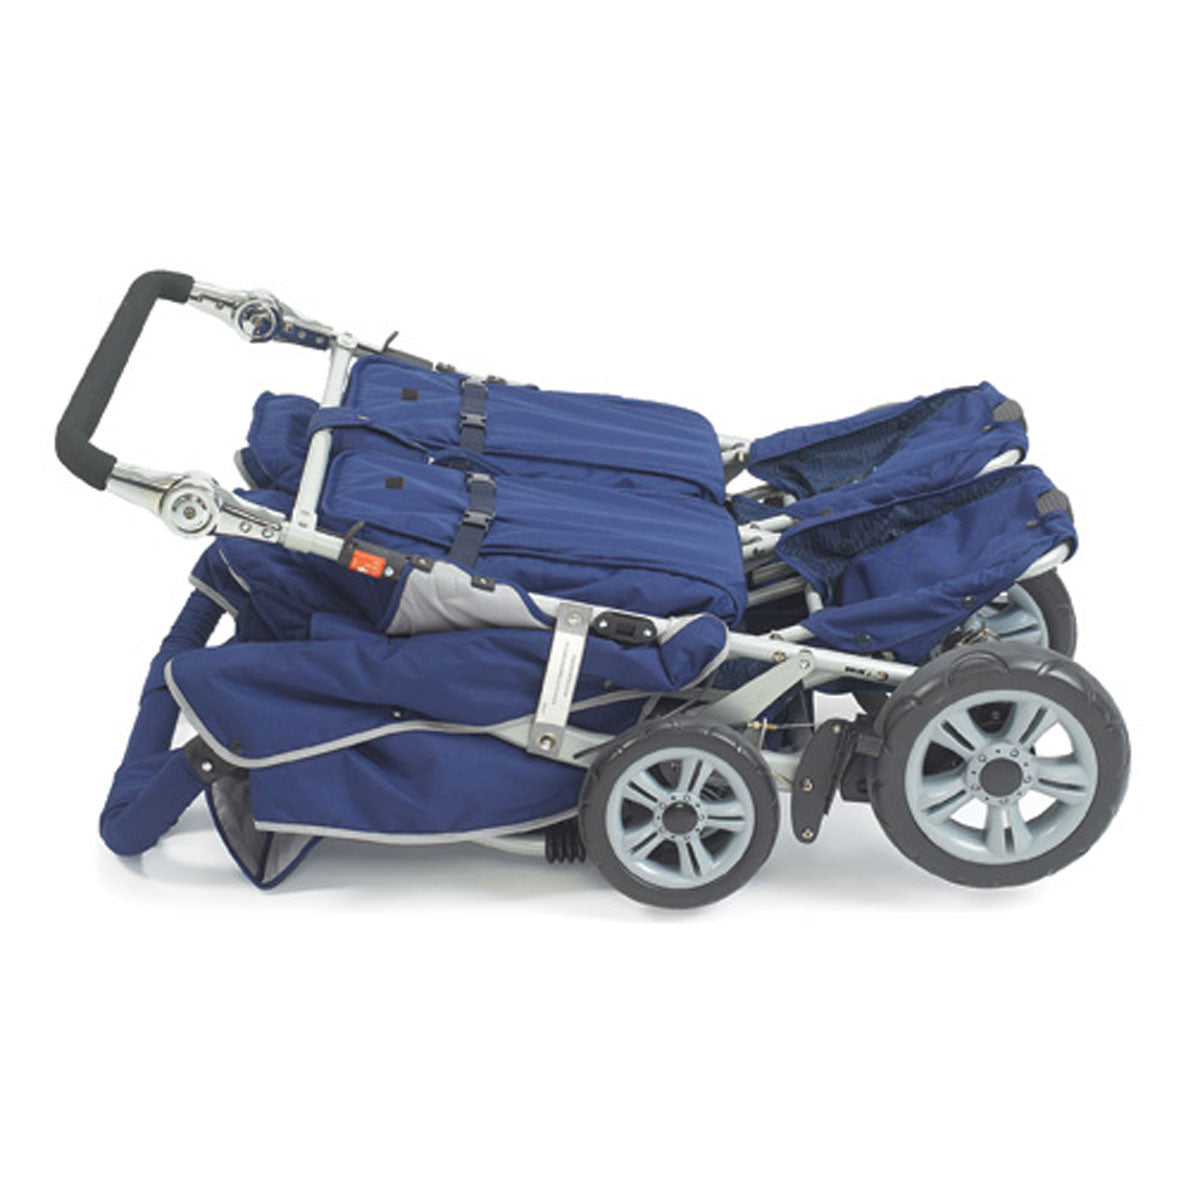 Bye Bye Stroller 4 Seat Super Quality Great Value Four